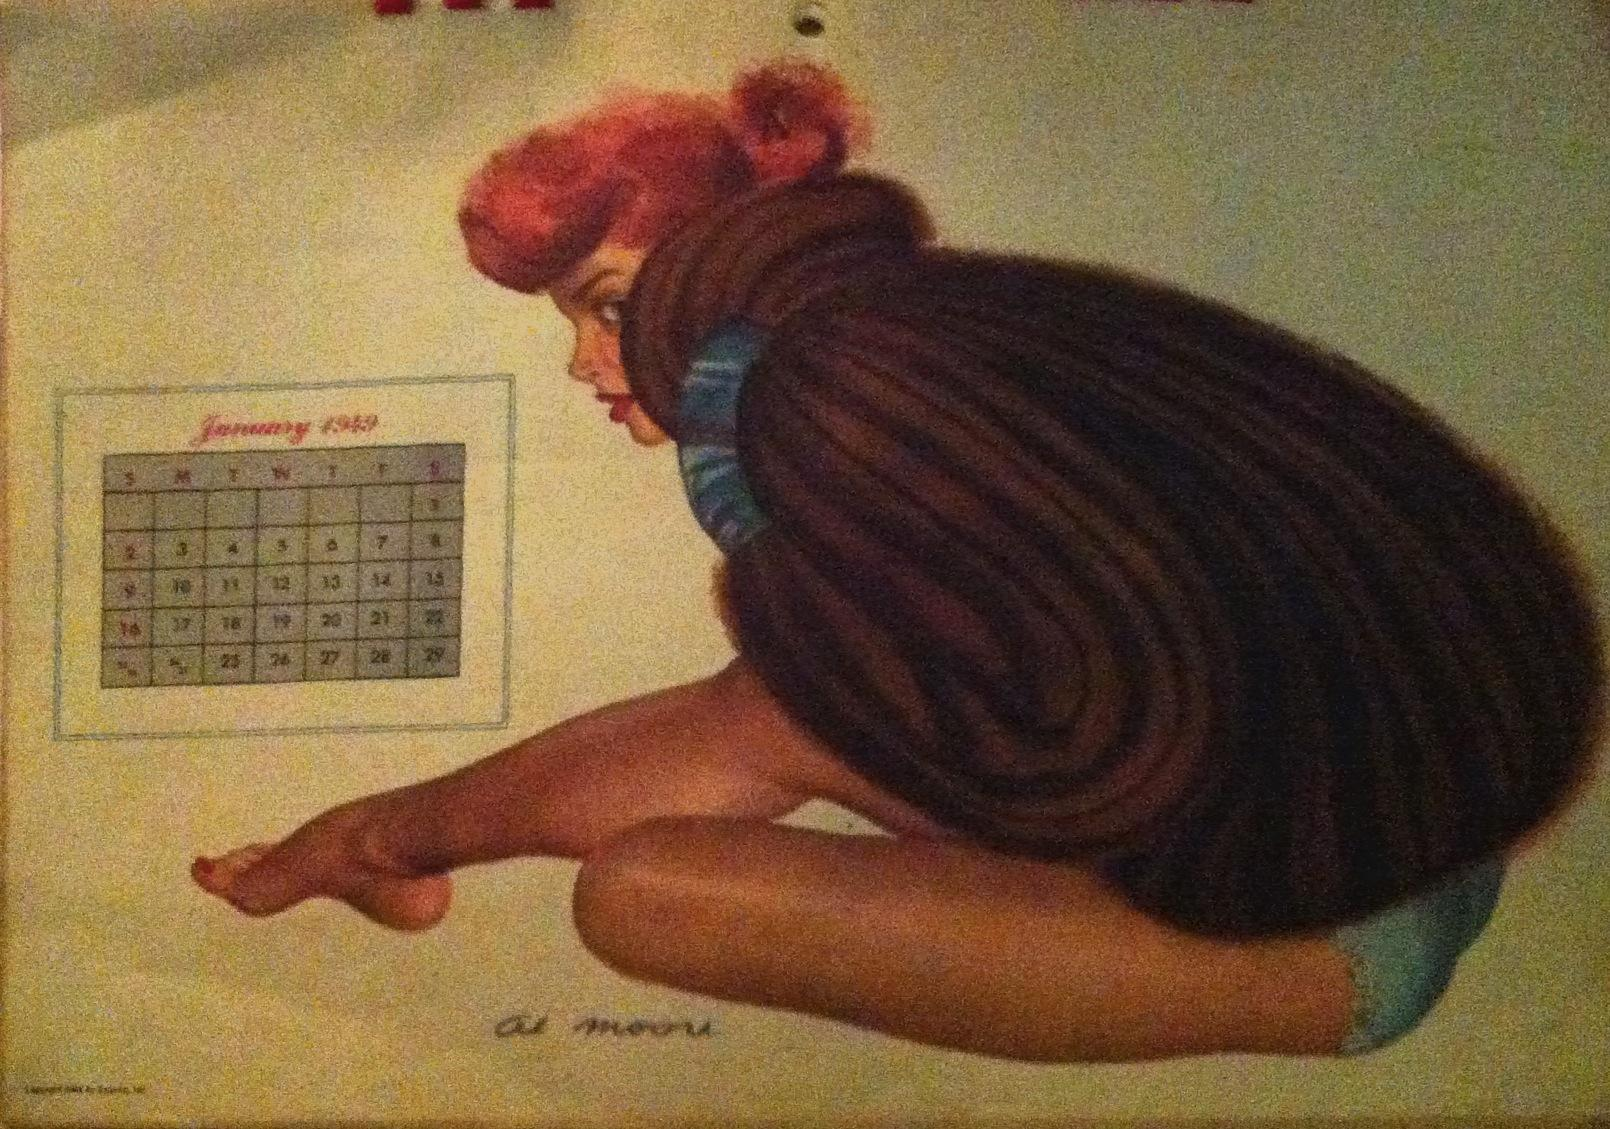 Calendrier Pin Up.Calendrier Pin Up Al Moore Annee 1949